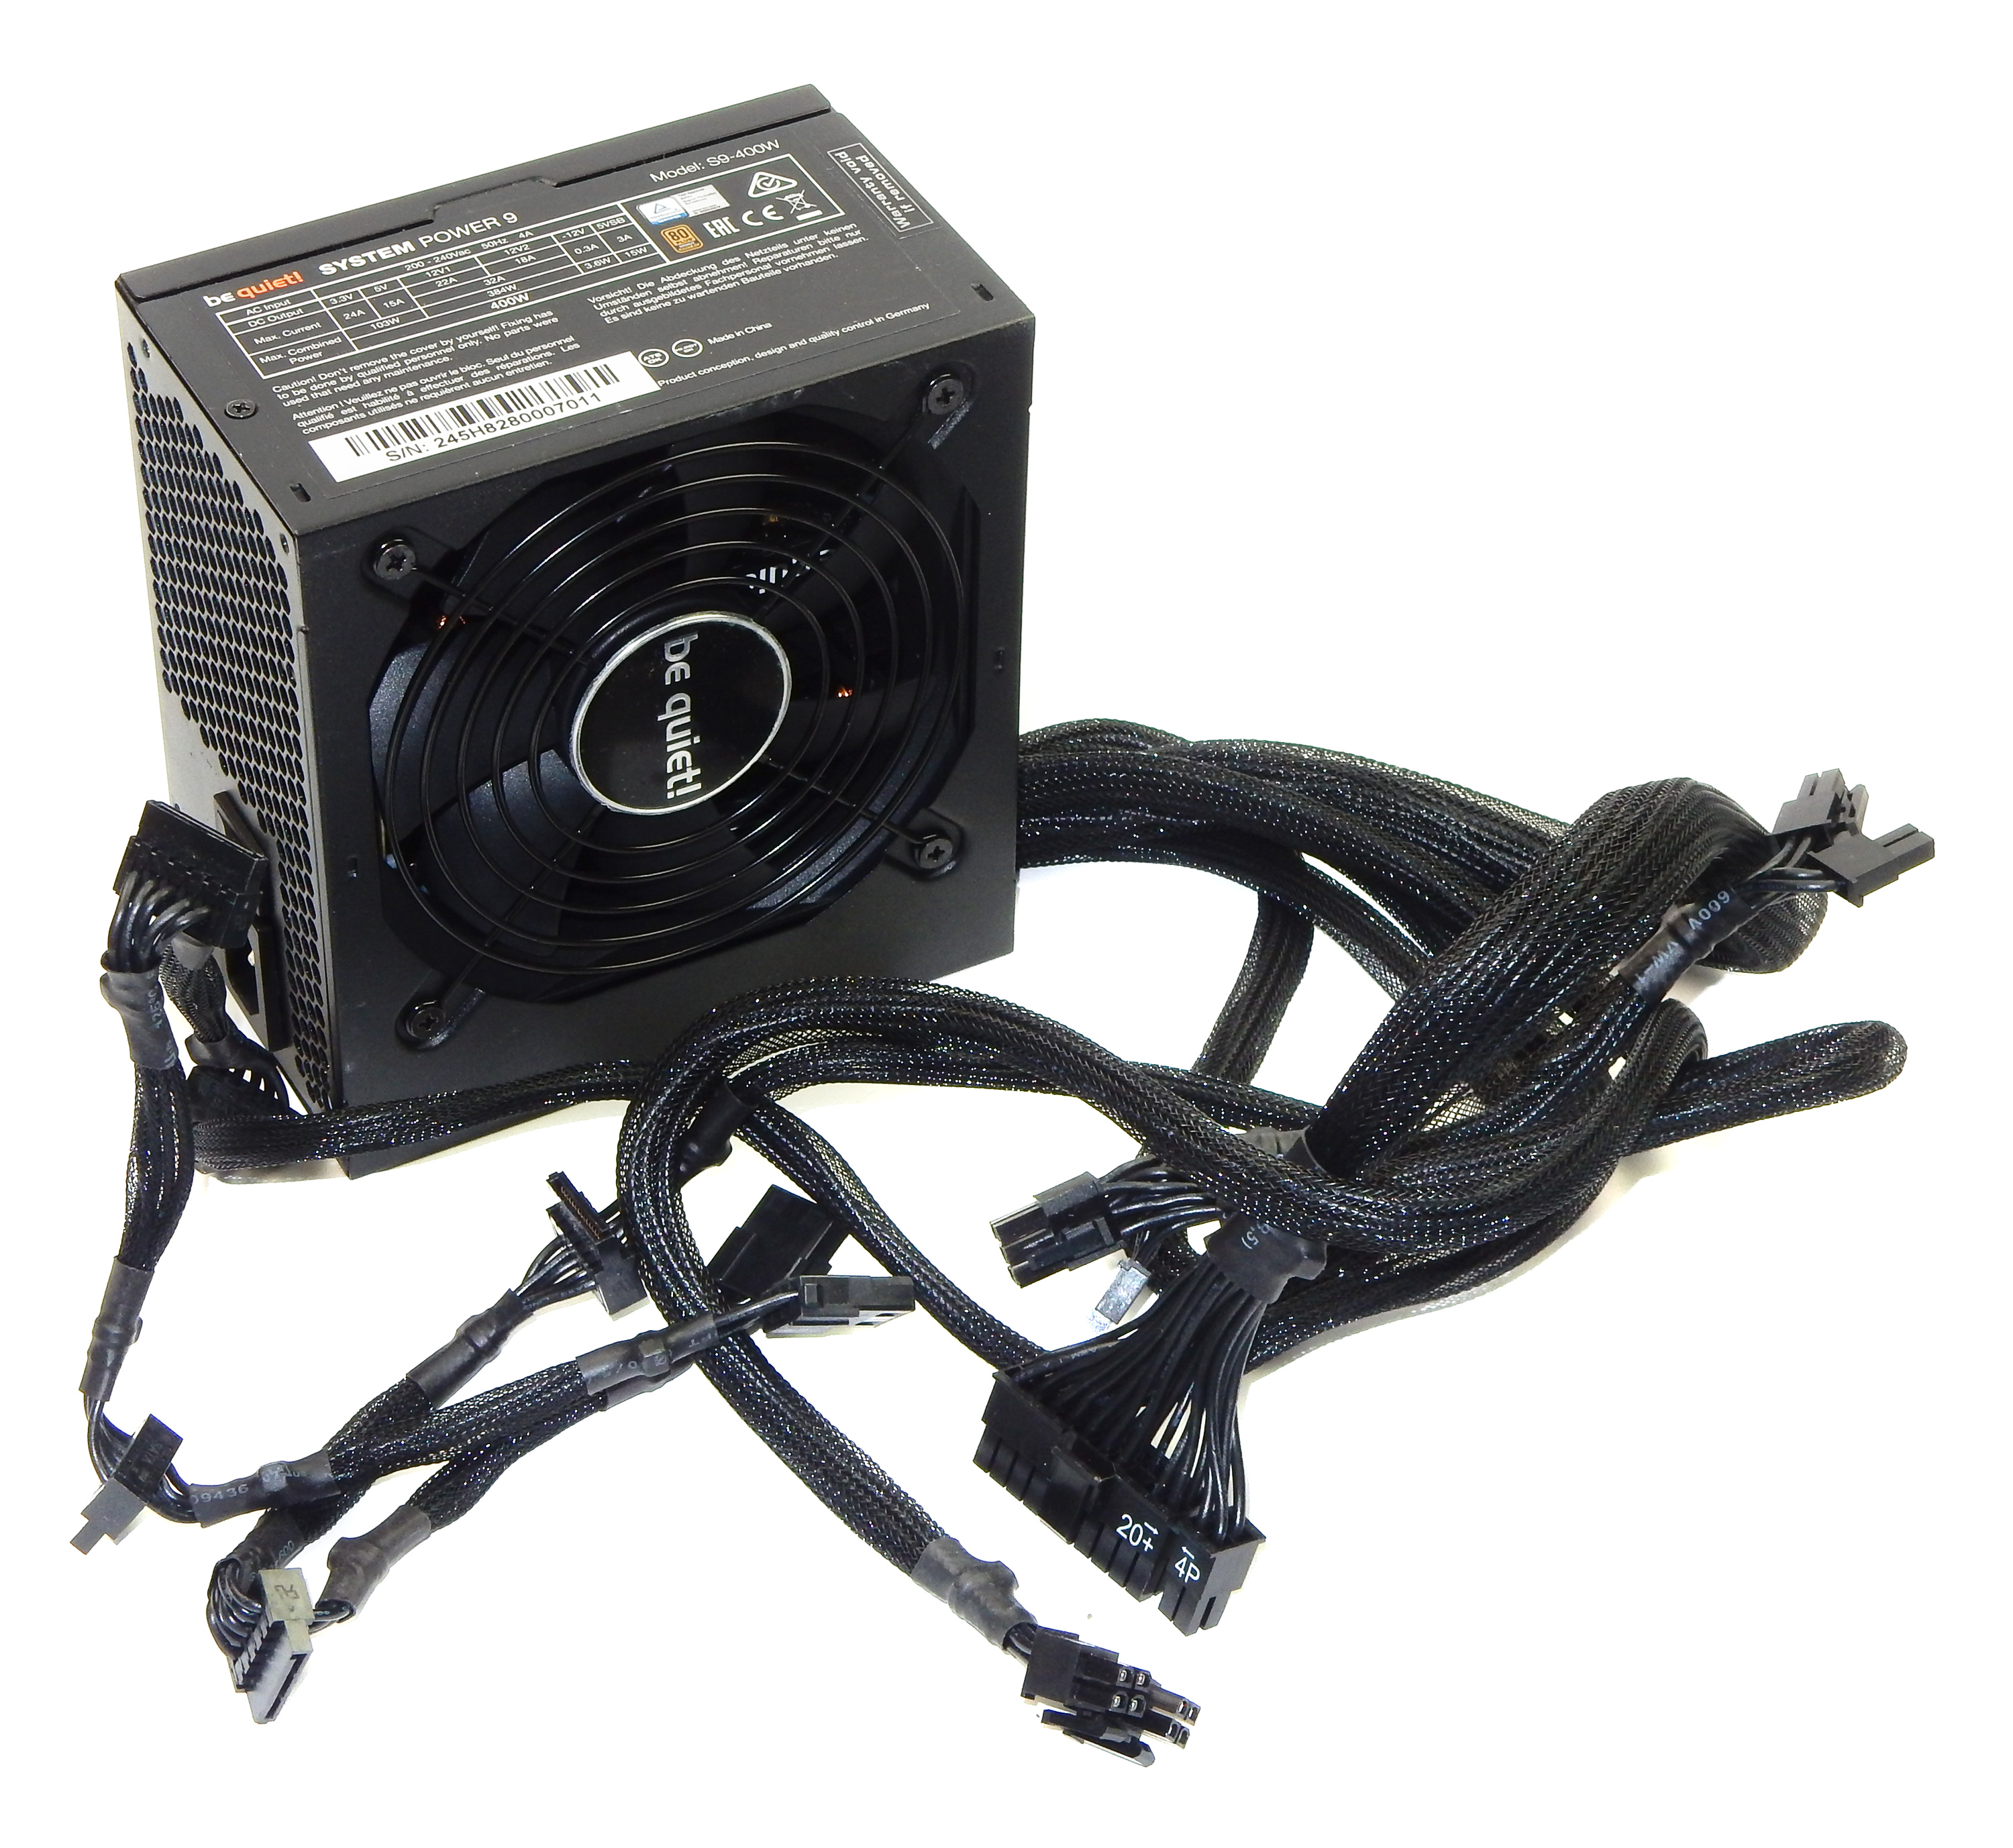 Be Quiet! S9-400W System Power 9 400W Power Supply 80 Plus